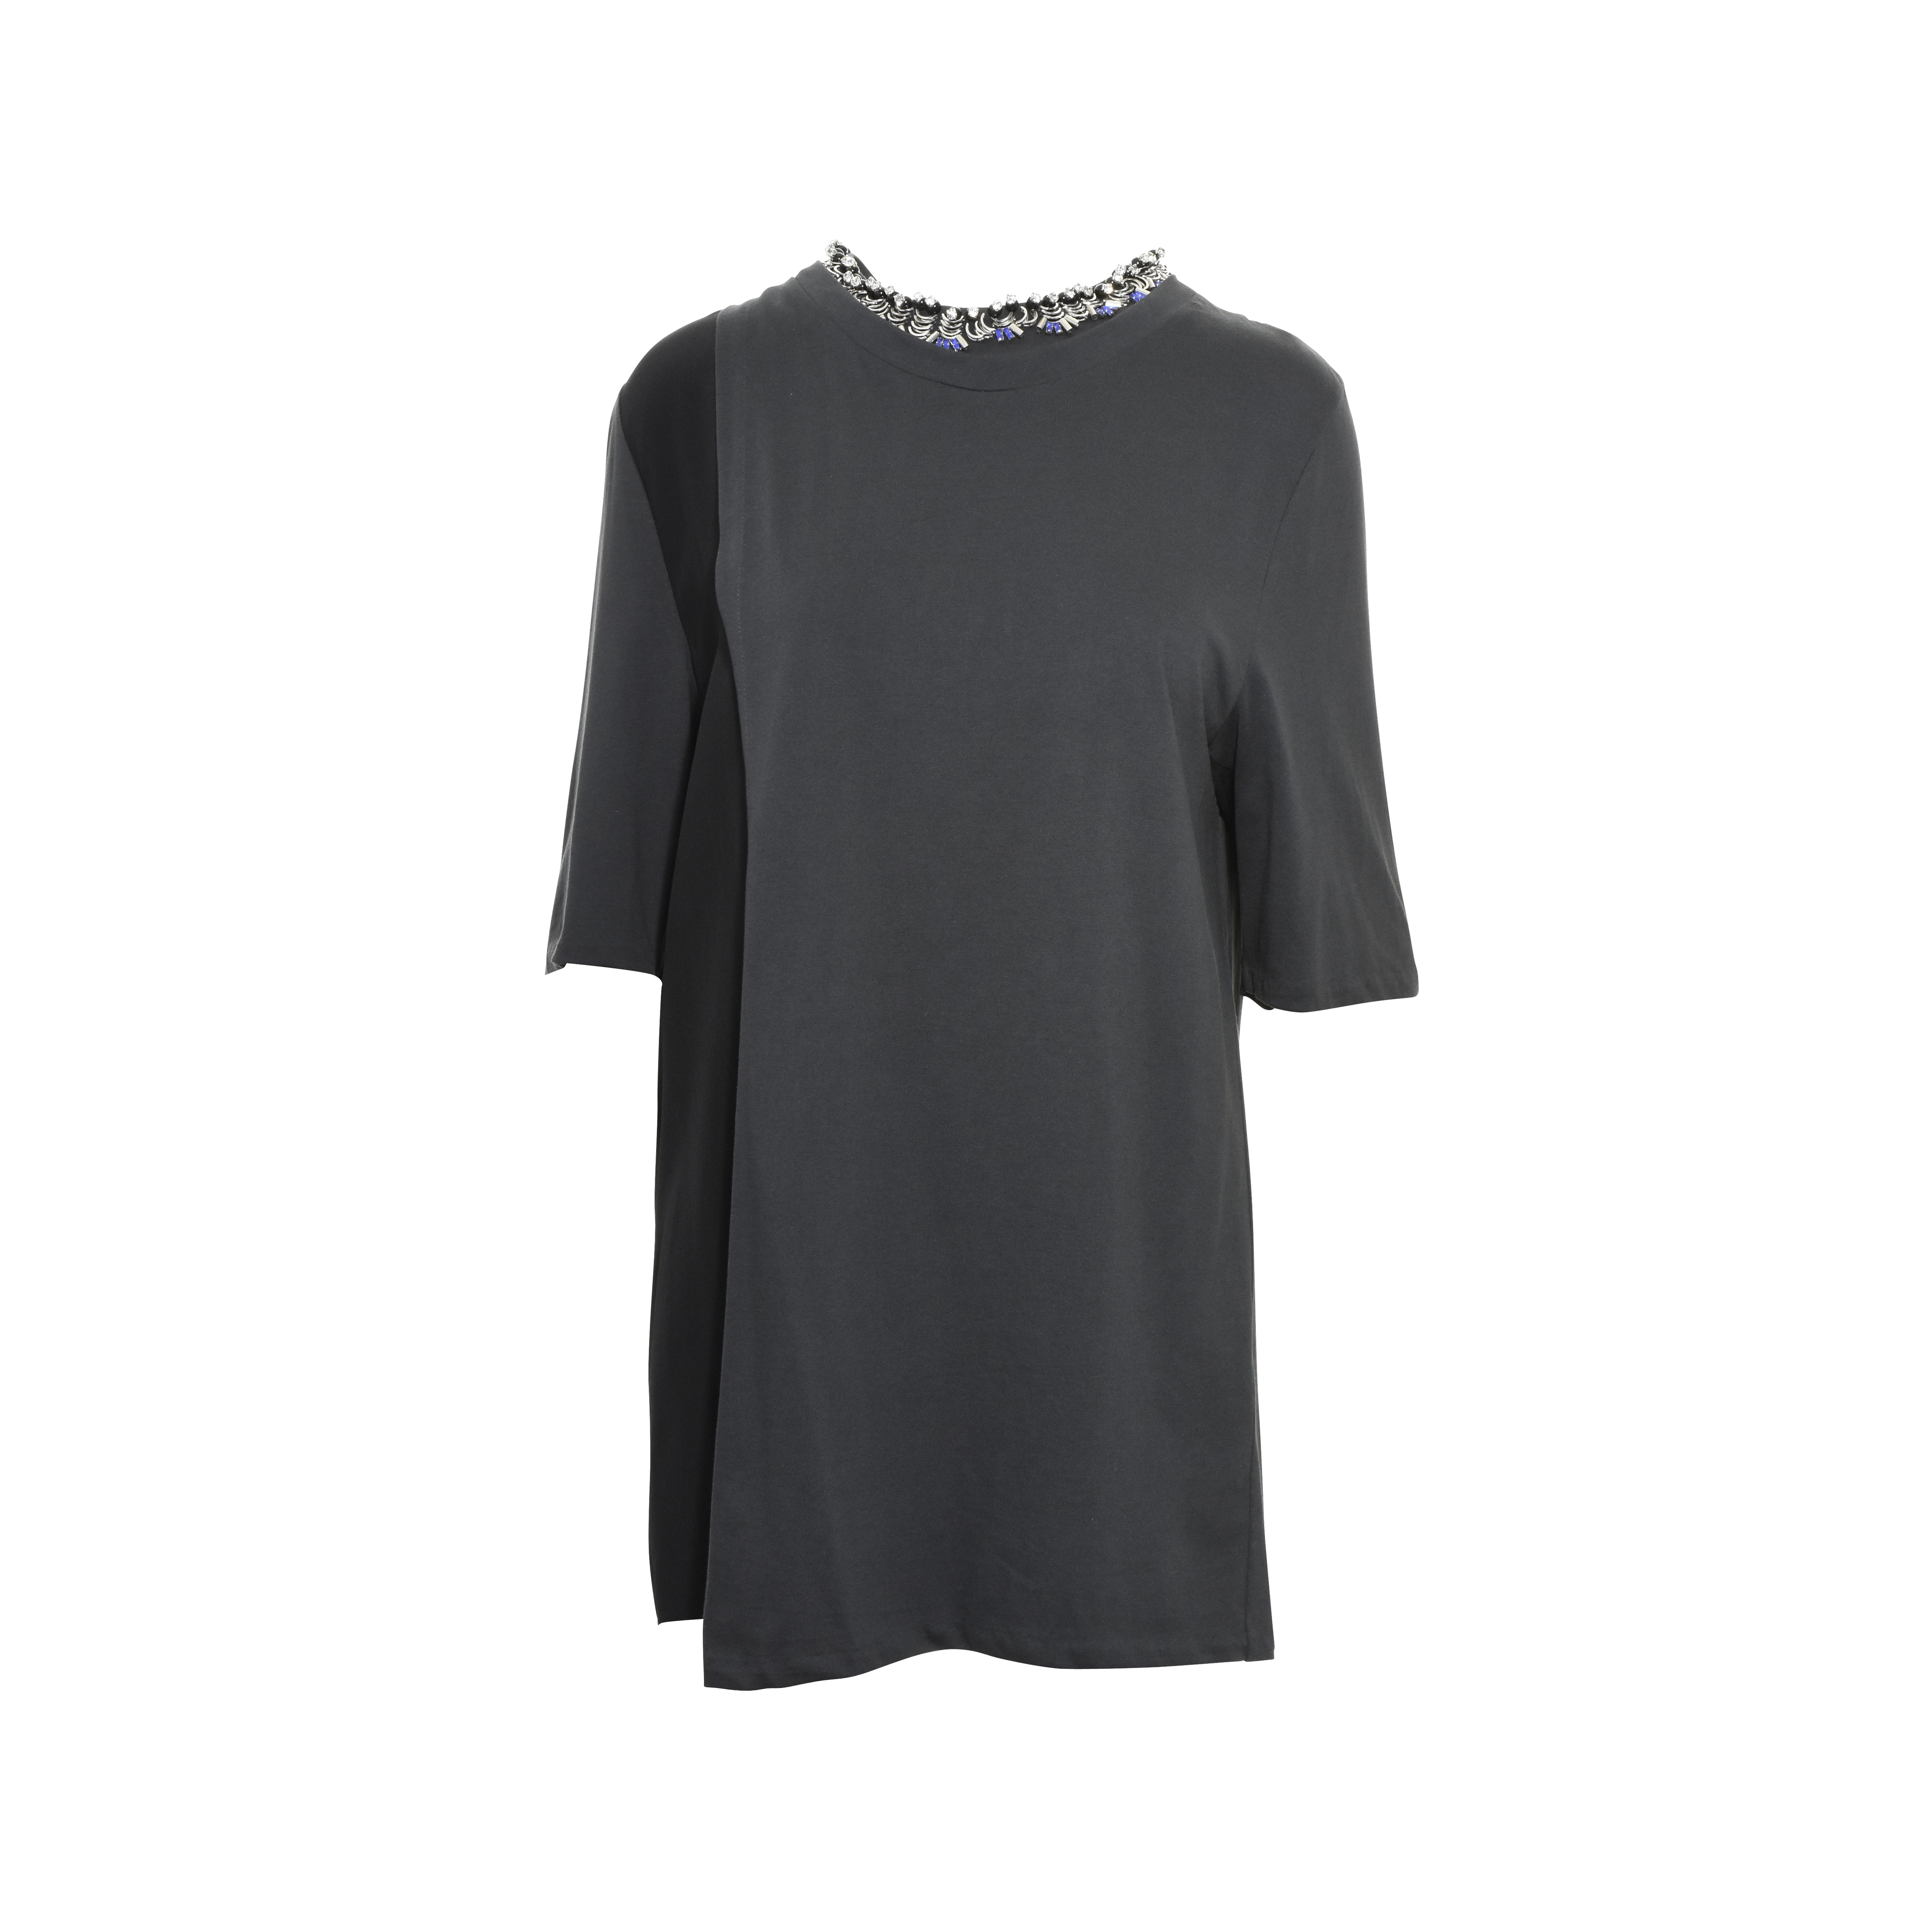 584b408442e976 Authentic Second Hand 3.1 Phillip Lim Embellished Wrap Top (PSS-356-00014)  - THE FIFTH COLLECTION